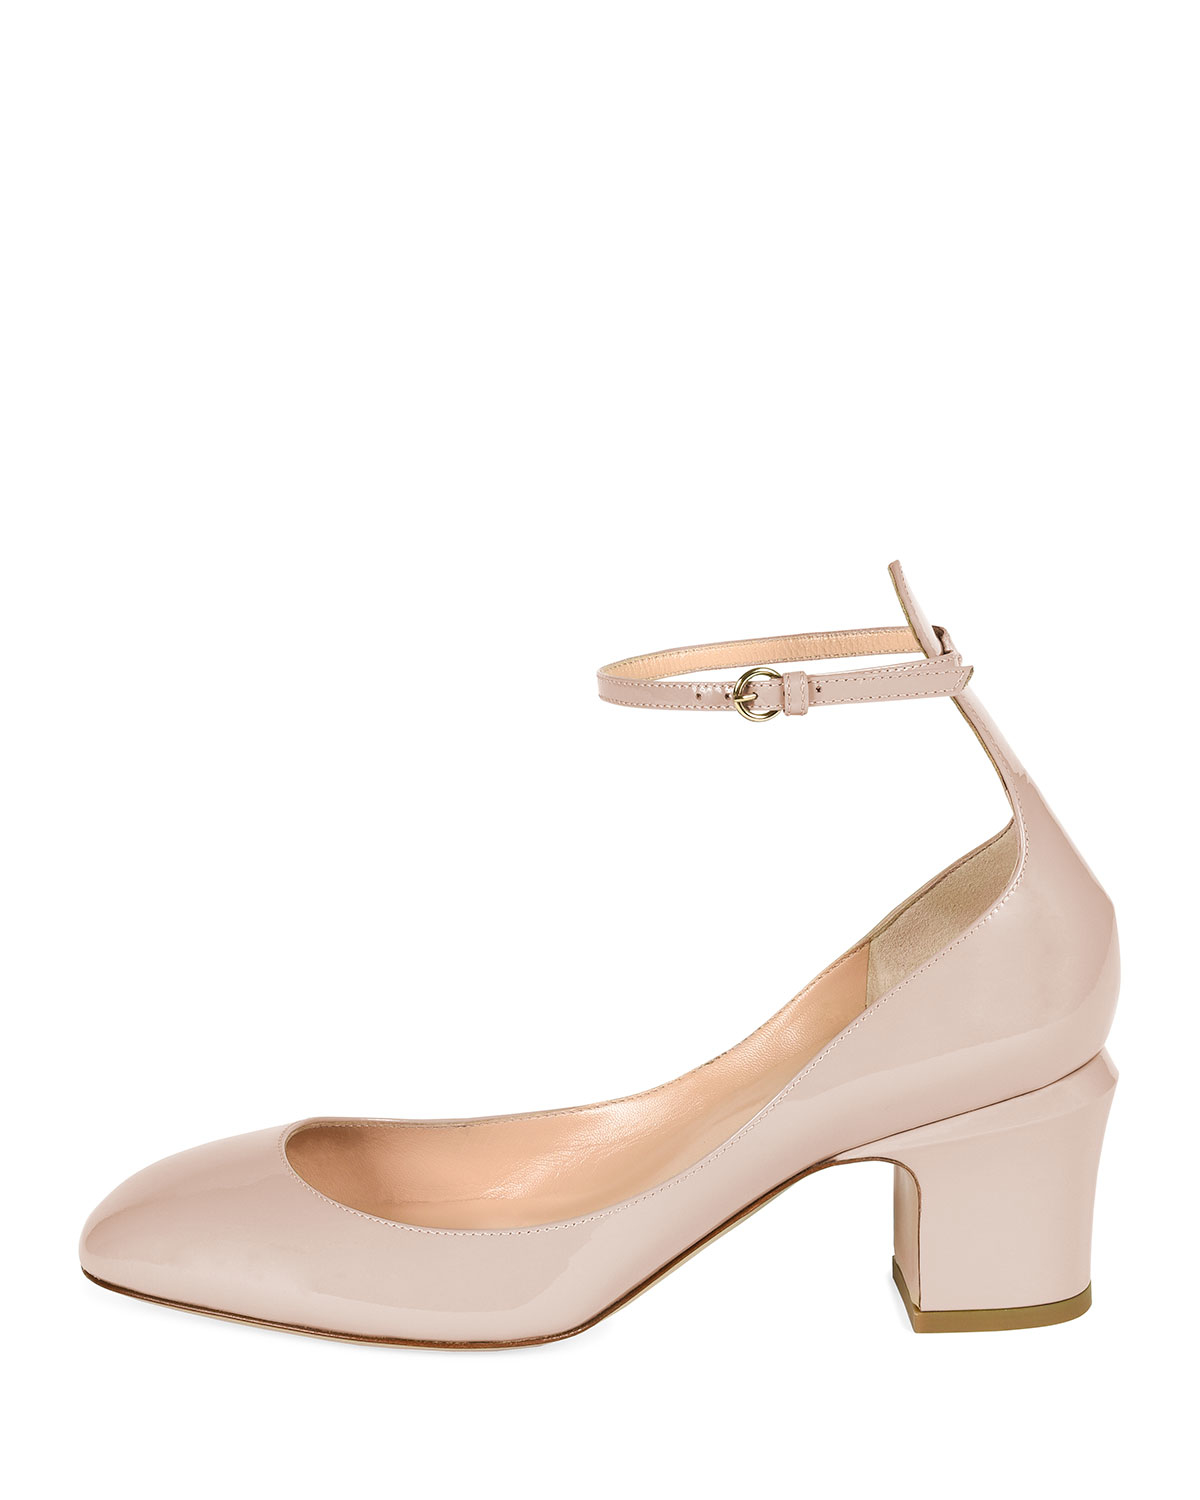 cc7d4aea307b Gallery. Previously sold at  Bergdorf Goodman · Women s Valentino Tango  Women s Patent Leather Pumps ...